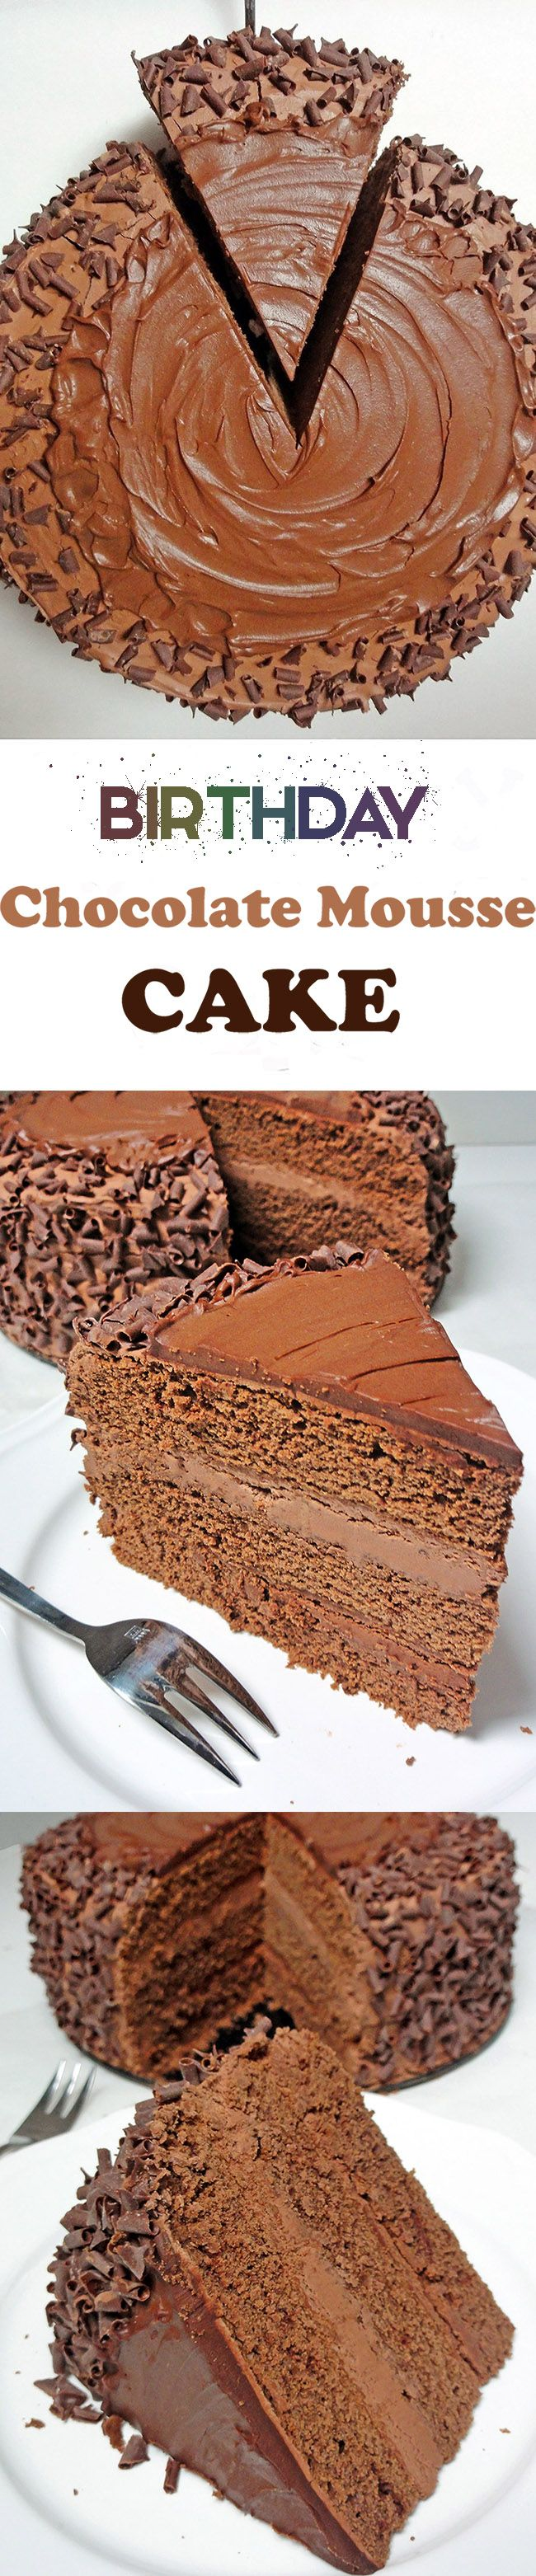 Celebration Chocolate Mousse Cake is one of the most decadent chocolate cakes ever. Get this delicious and easy-to-follow Chocolate Cake recipe. Pure chocolate pleasure.